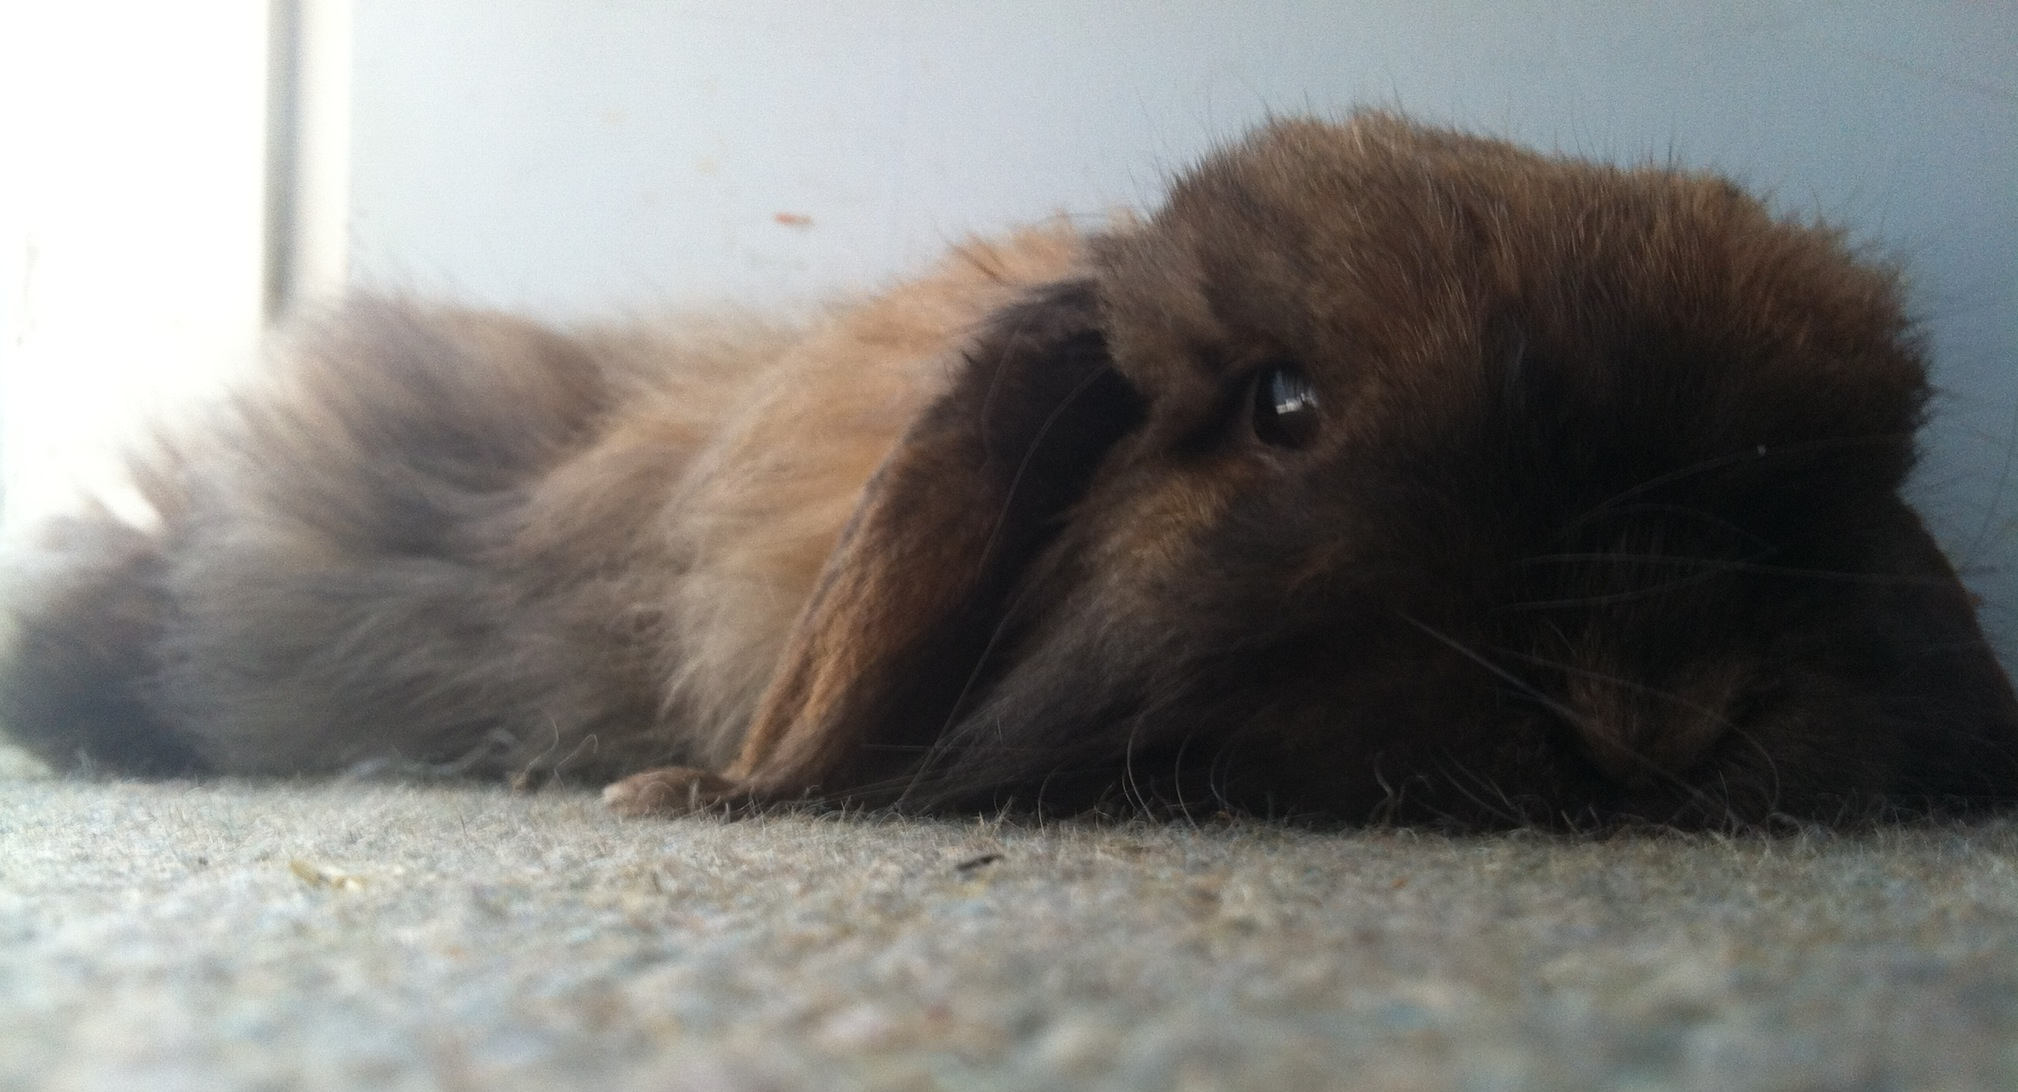 Sleepy Bunny Just Melts into the Floor